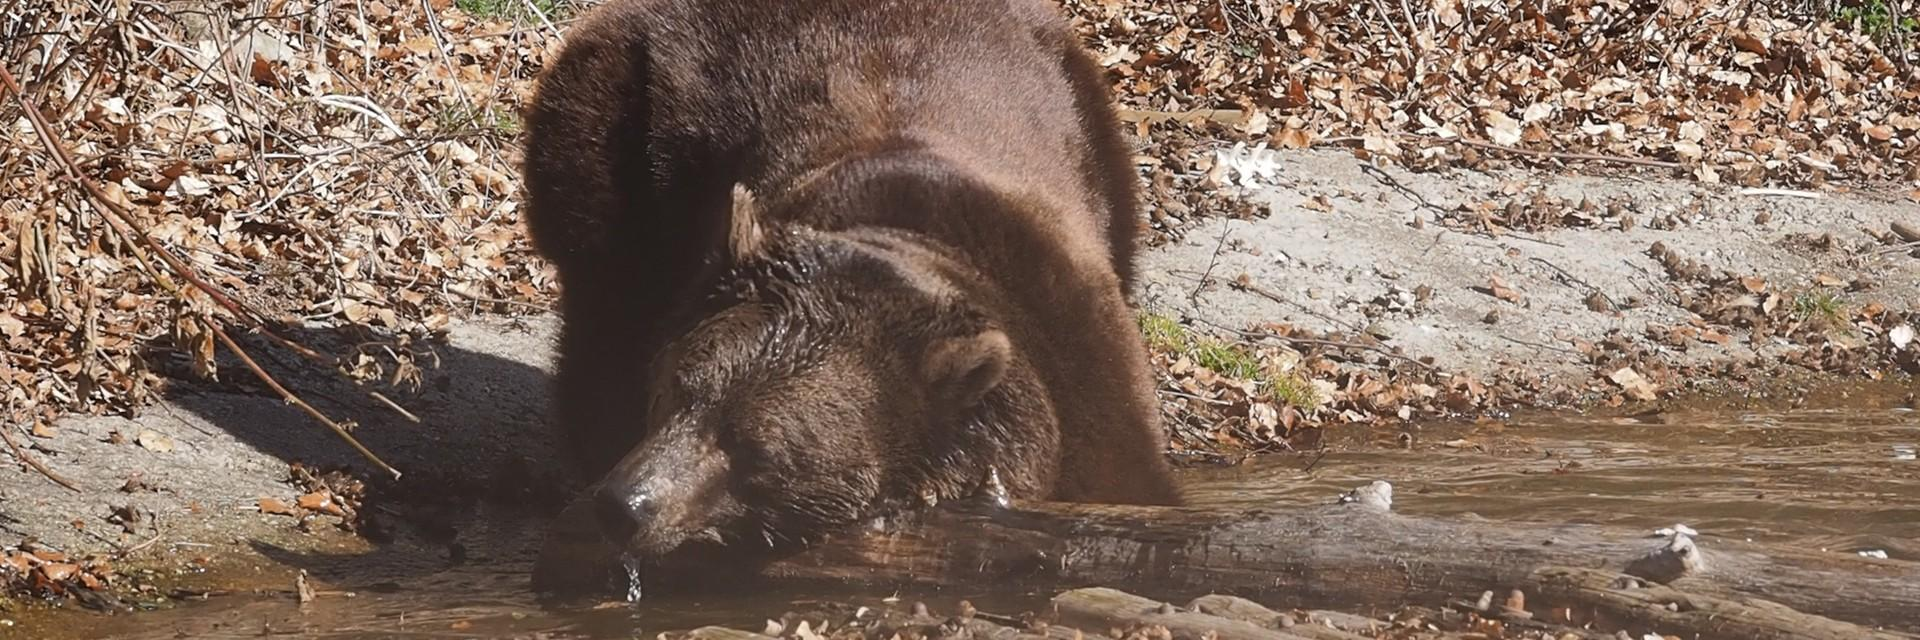 Brownbear Erich turns his head into the water